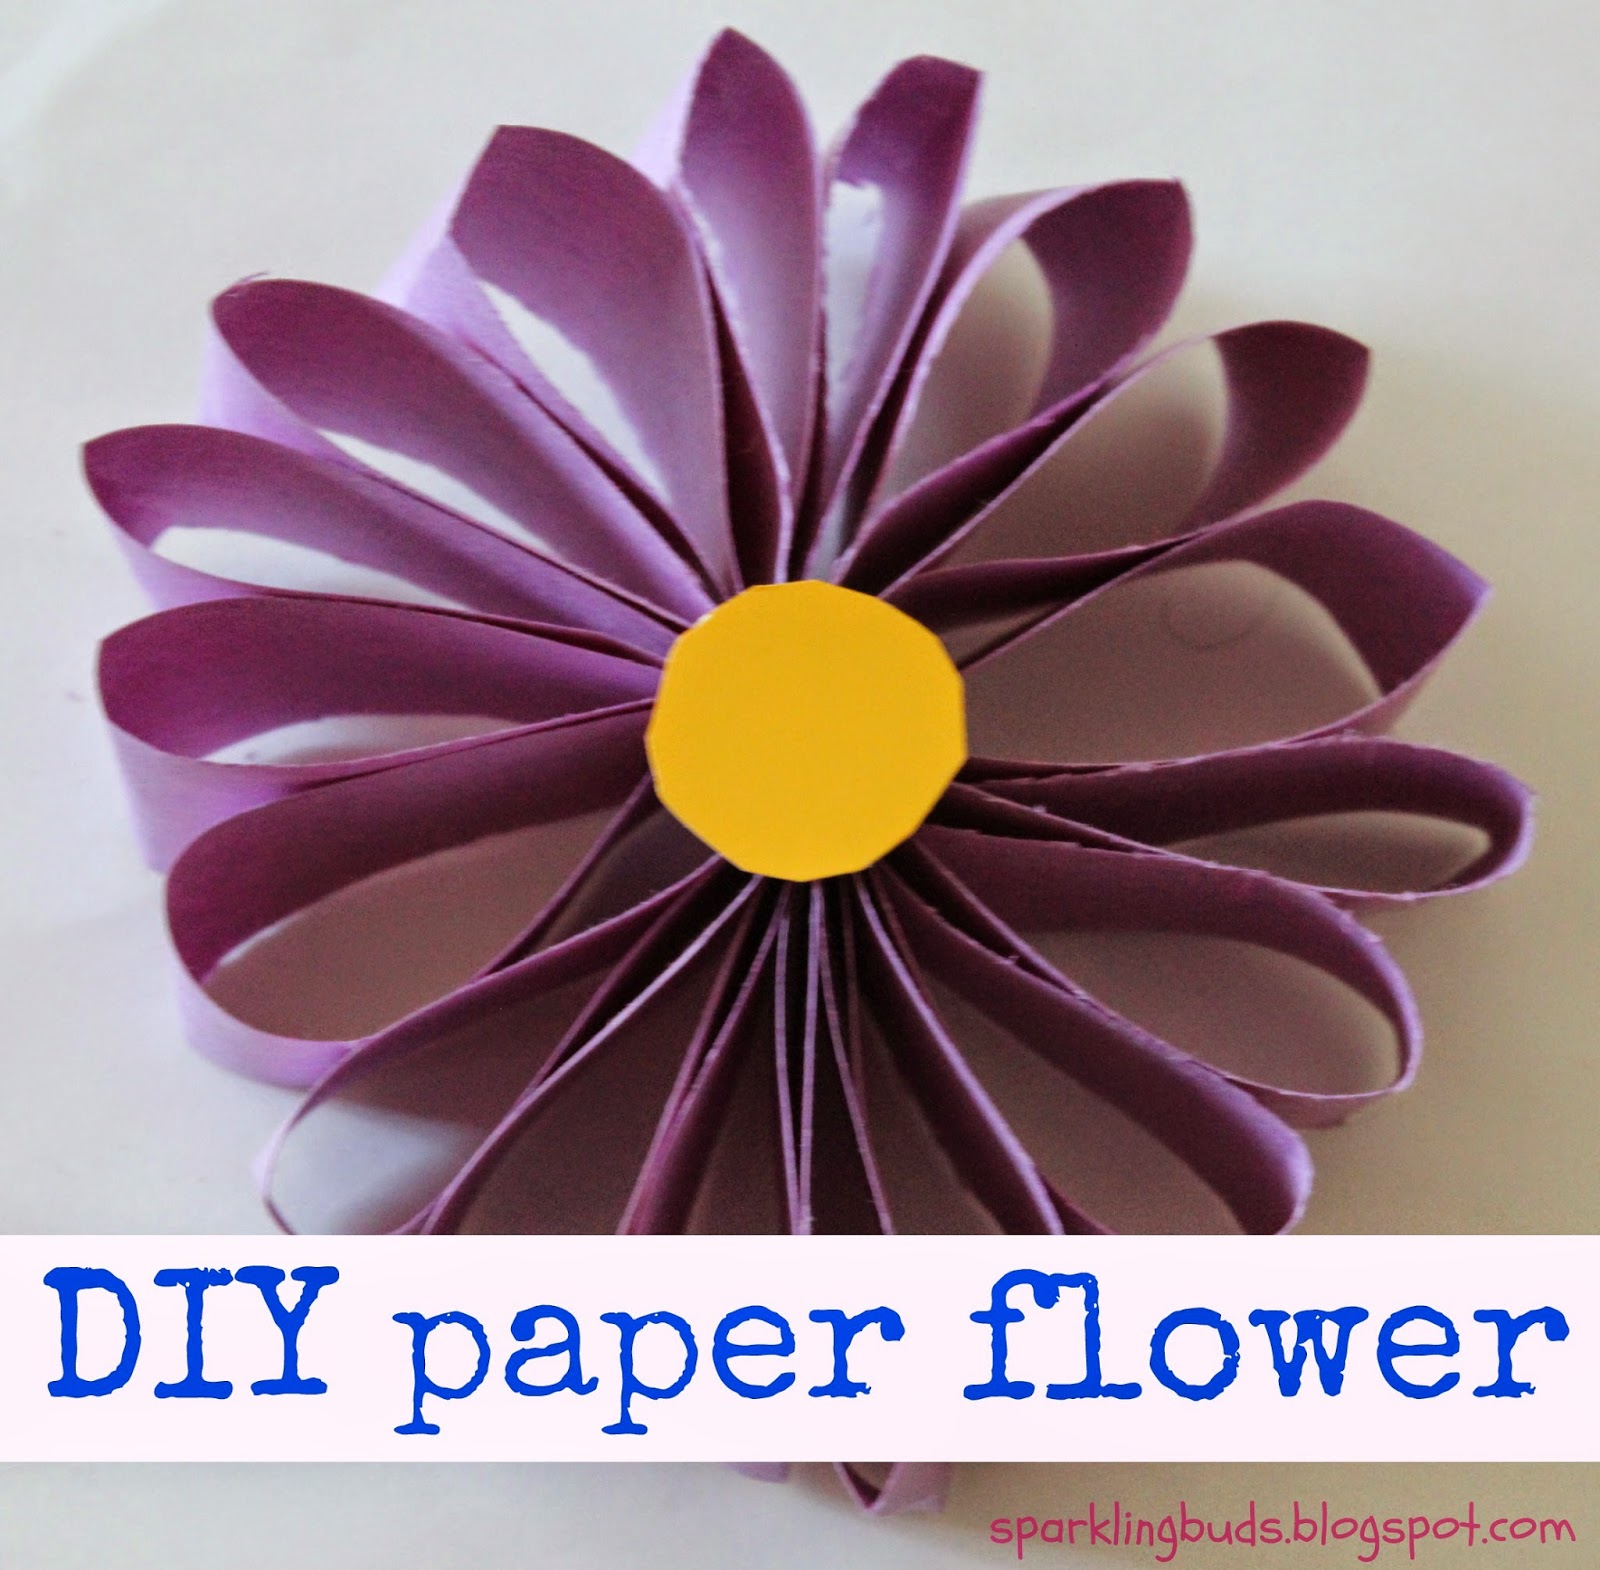 How to make paper roses with construction paper step by step paper how to make paper roses with construction paper step by step simple flower to make with mightylinksfo